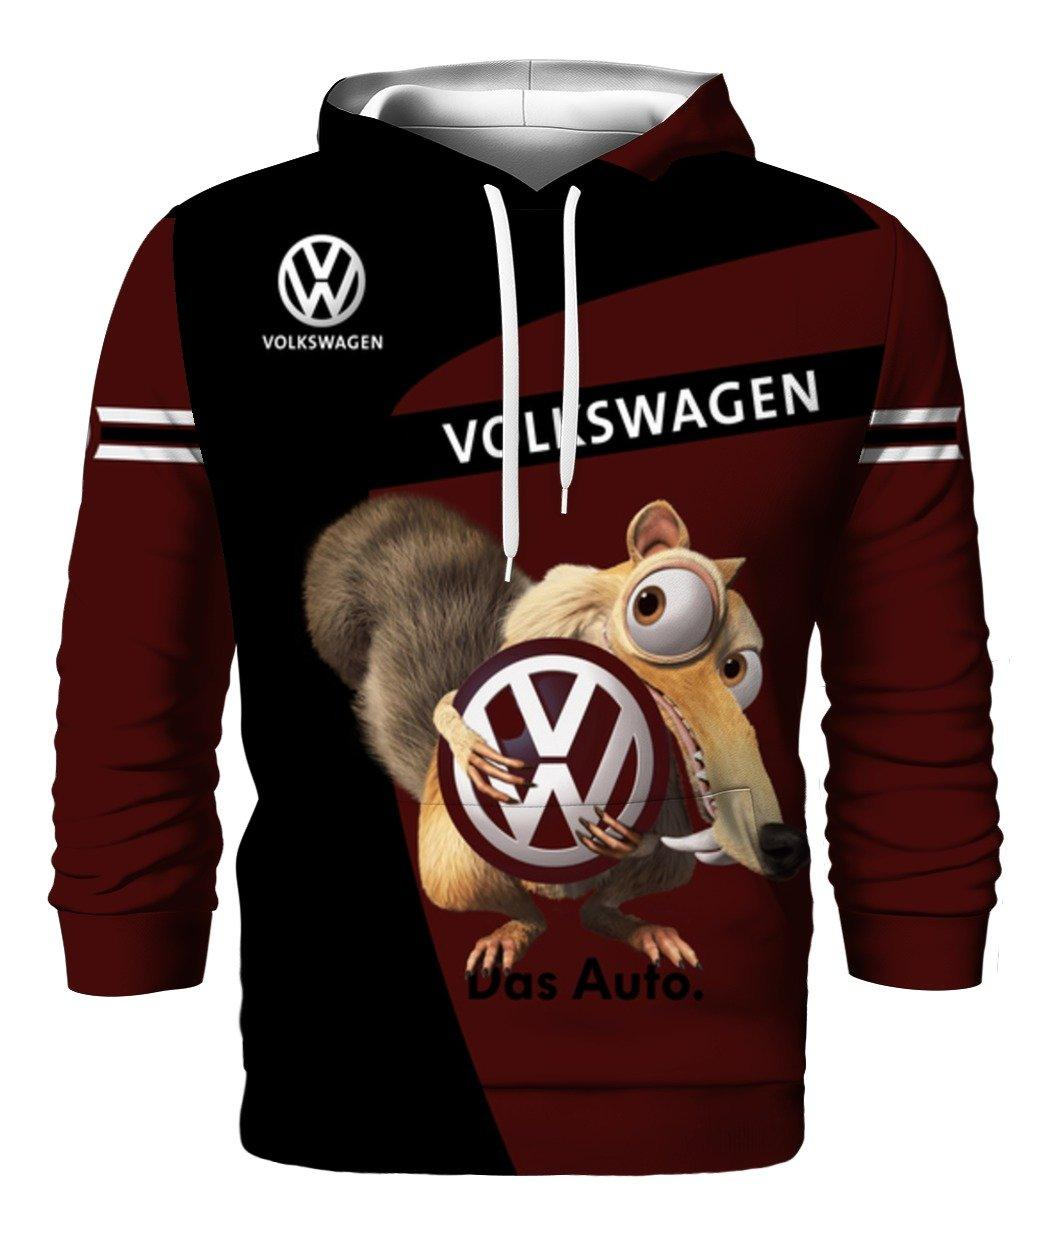 Volkswagen Scrat Squirrel Ice Age Full 3d 3d Graphic Printed Tshirt Hoodie Size S-5XL